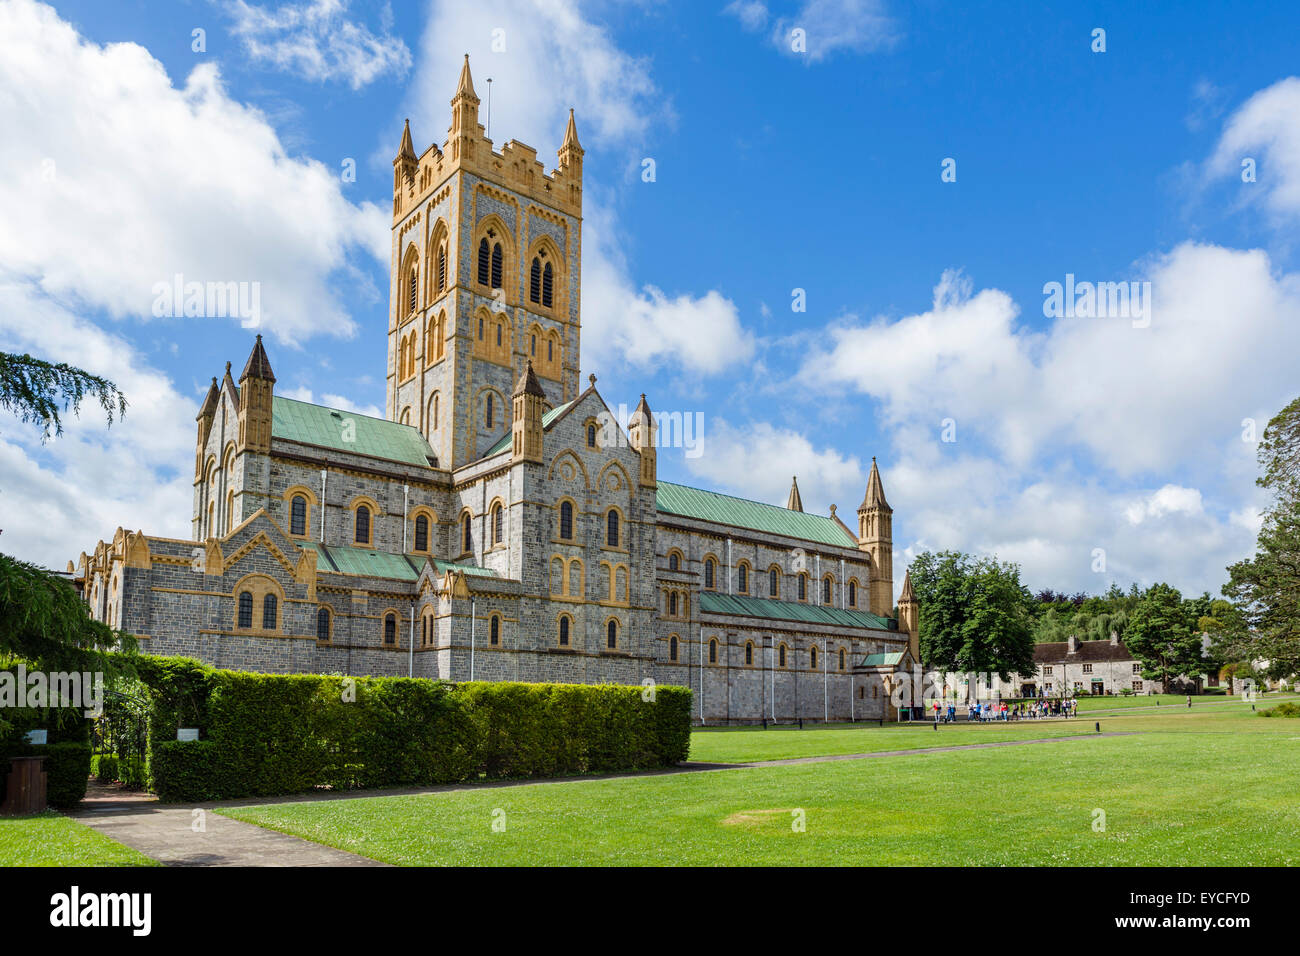 The Abbey Church of St Mary, Buckfast Abbey, Buckfastleigh, Devon, England, UK - Stock Image